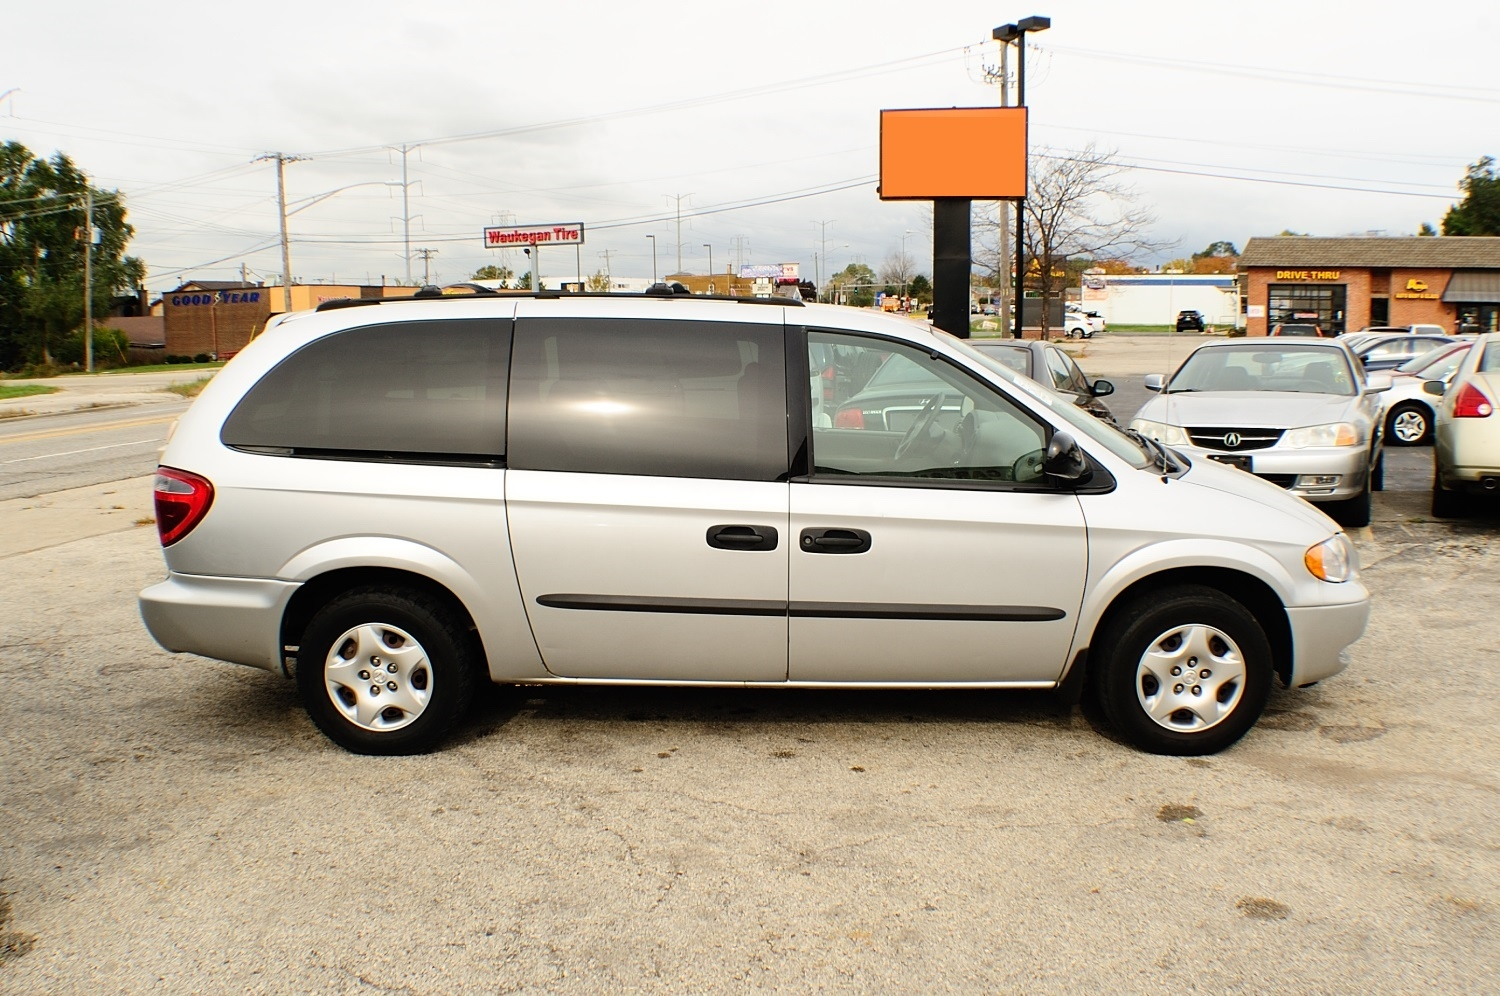 2003 Dodge Grand Caravan SXT Silver Mini Van used car sale Bannockburn Barrington Beach Park